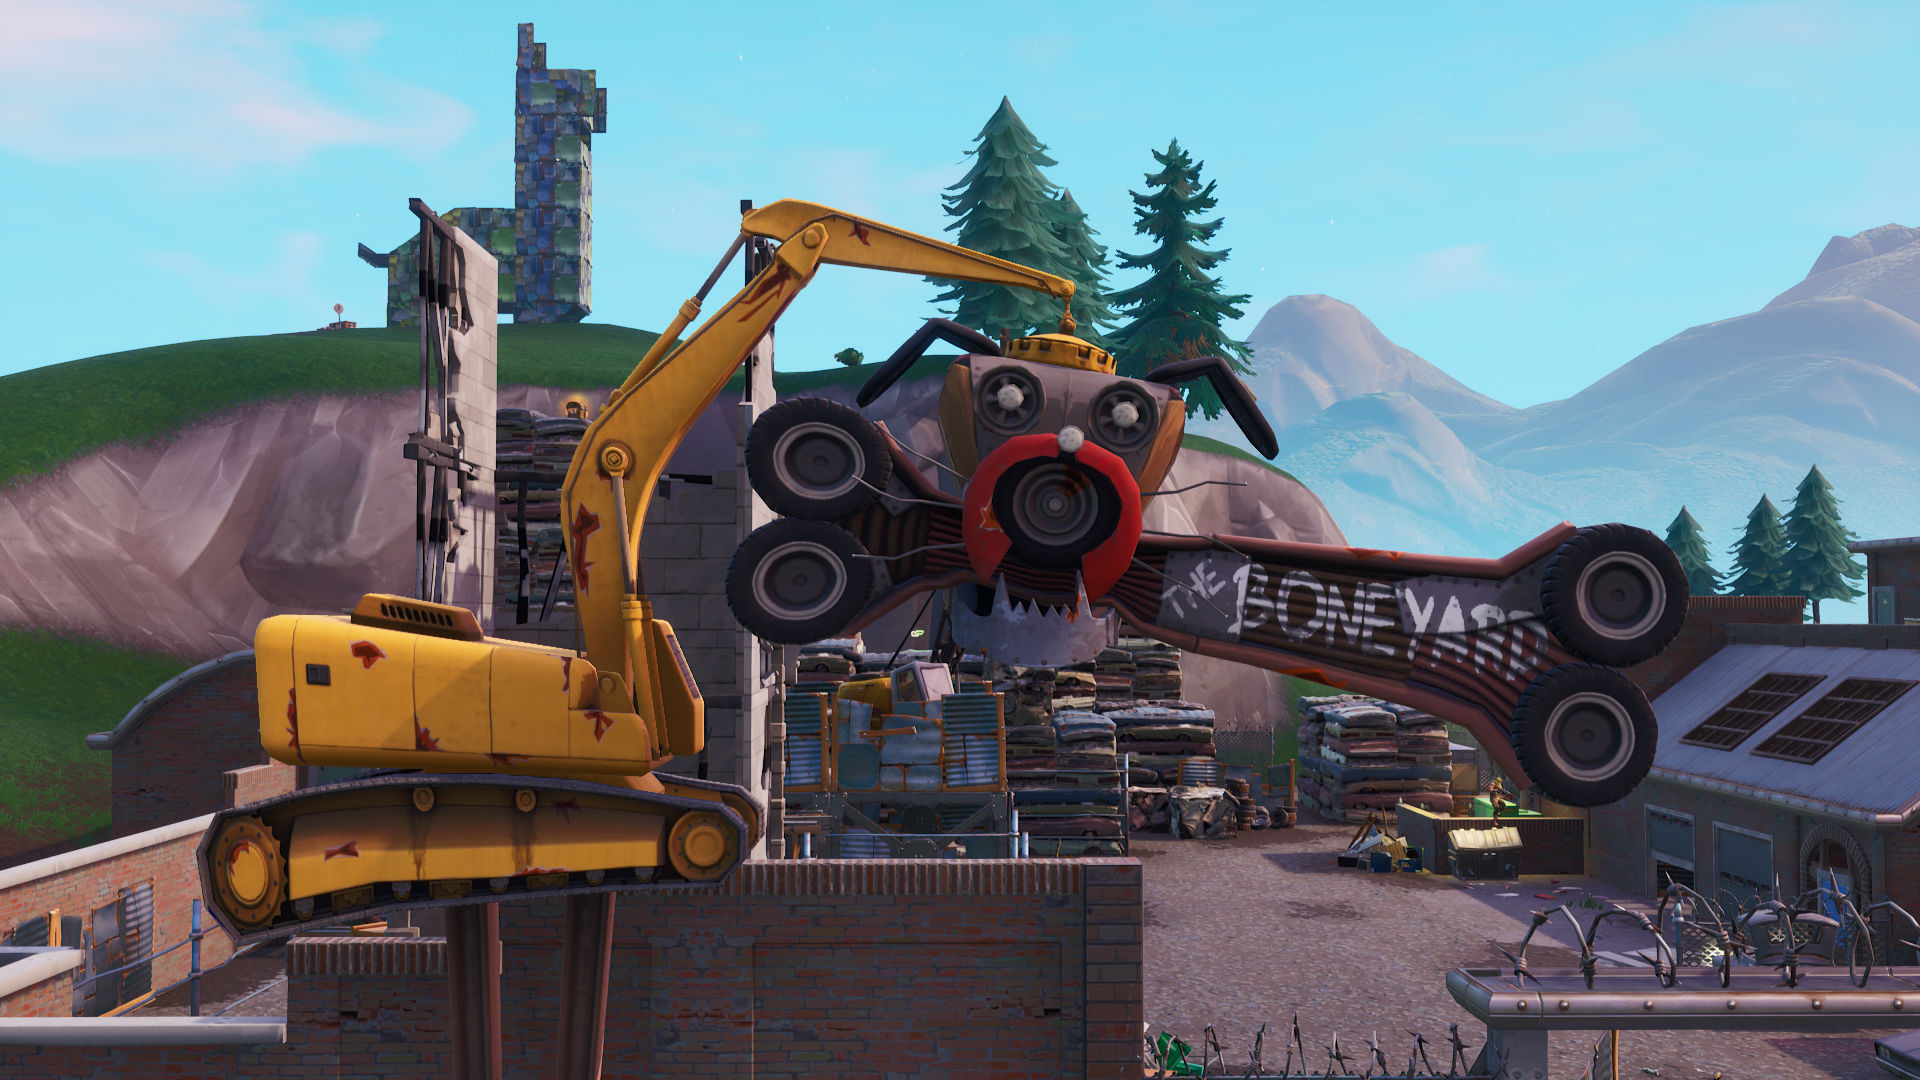 Fortnite Fortbyte 8 location: where to search within Junk Junction